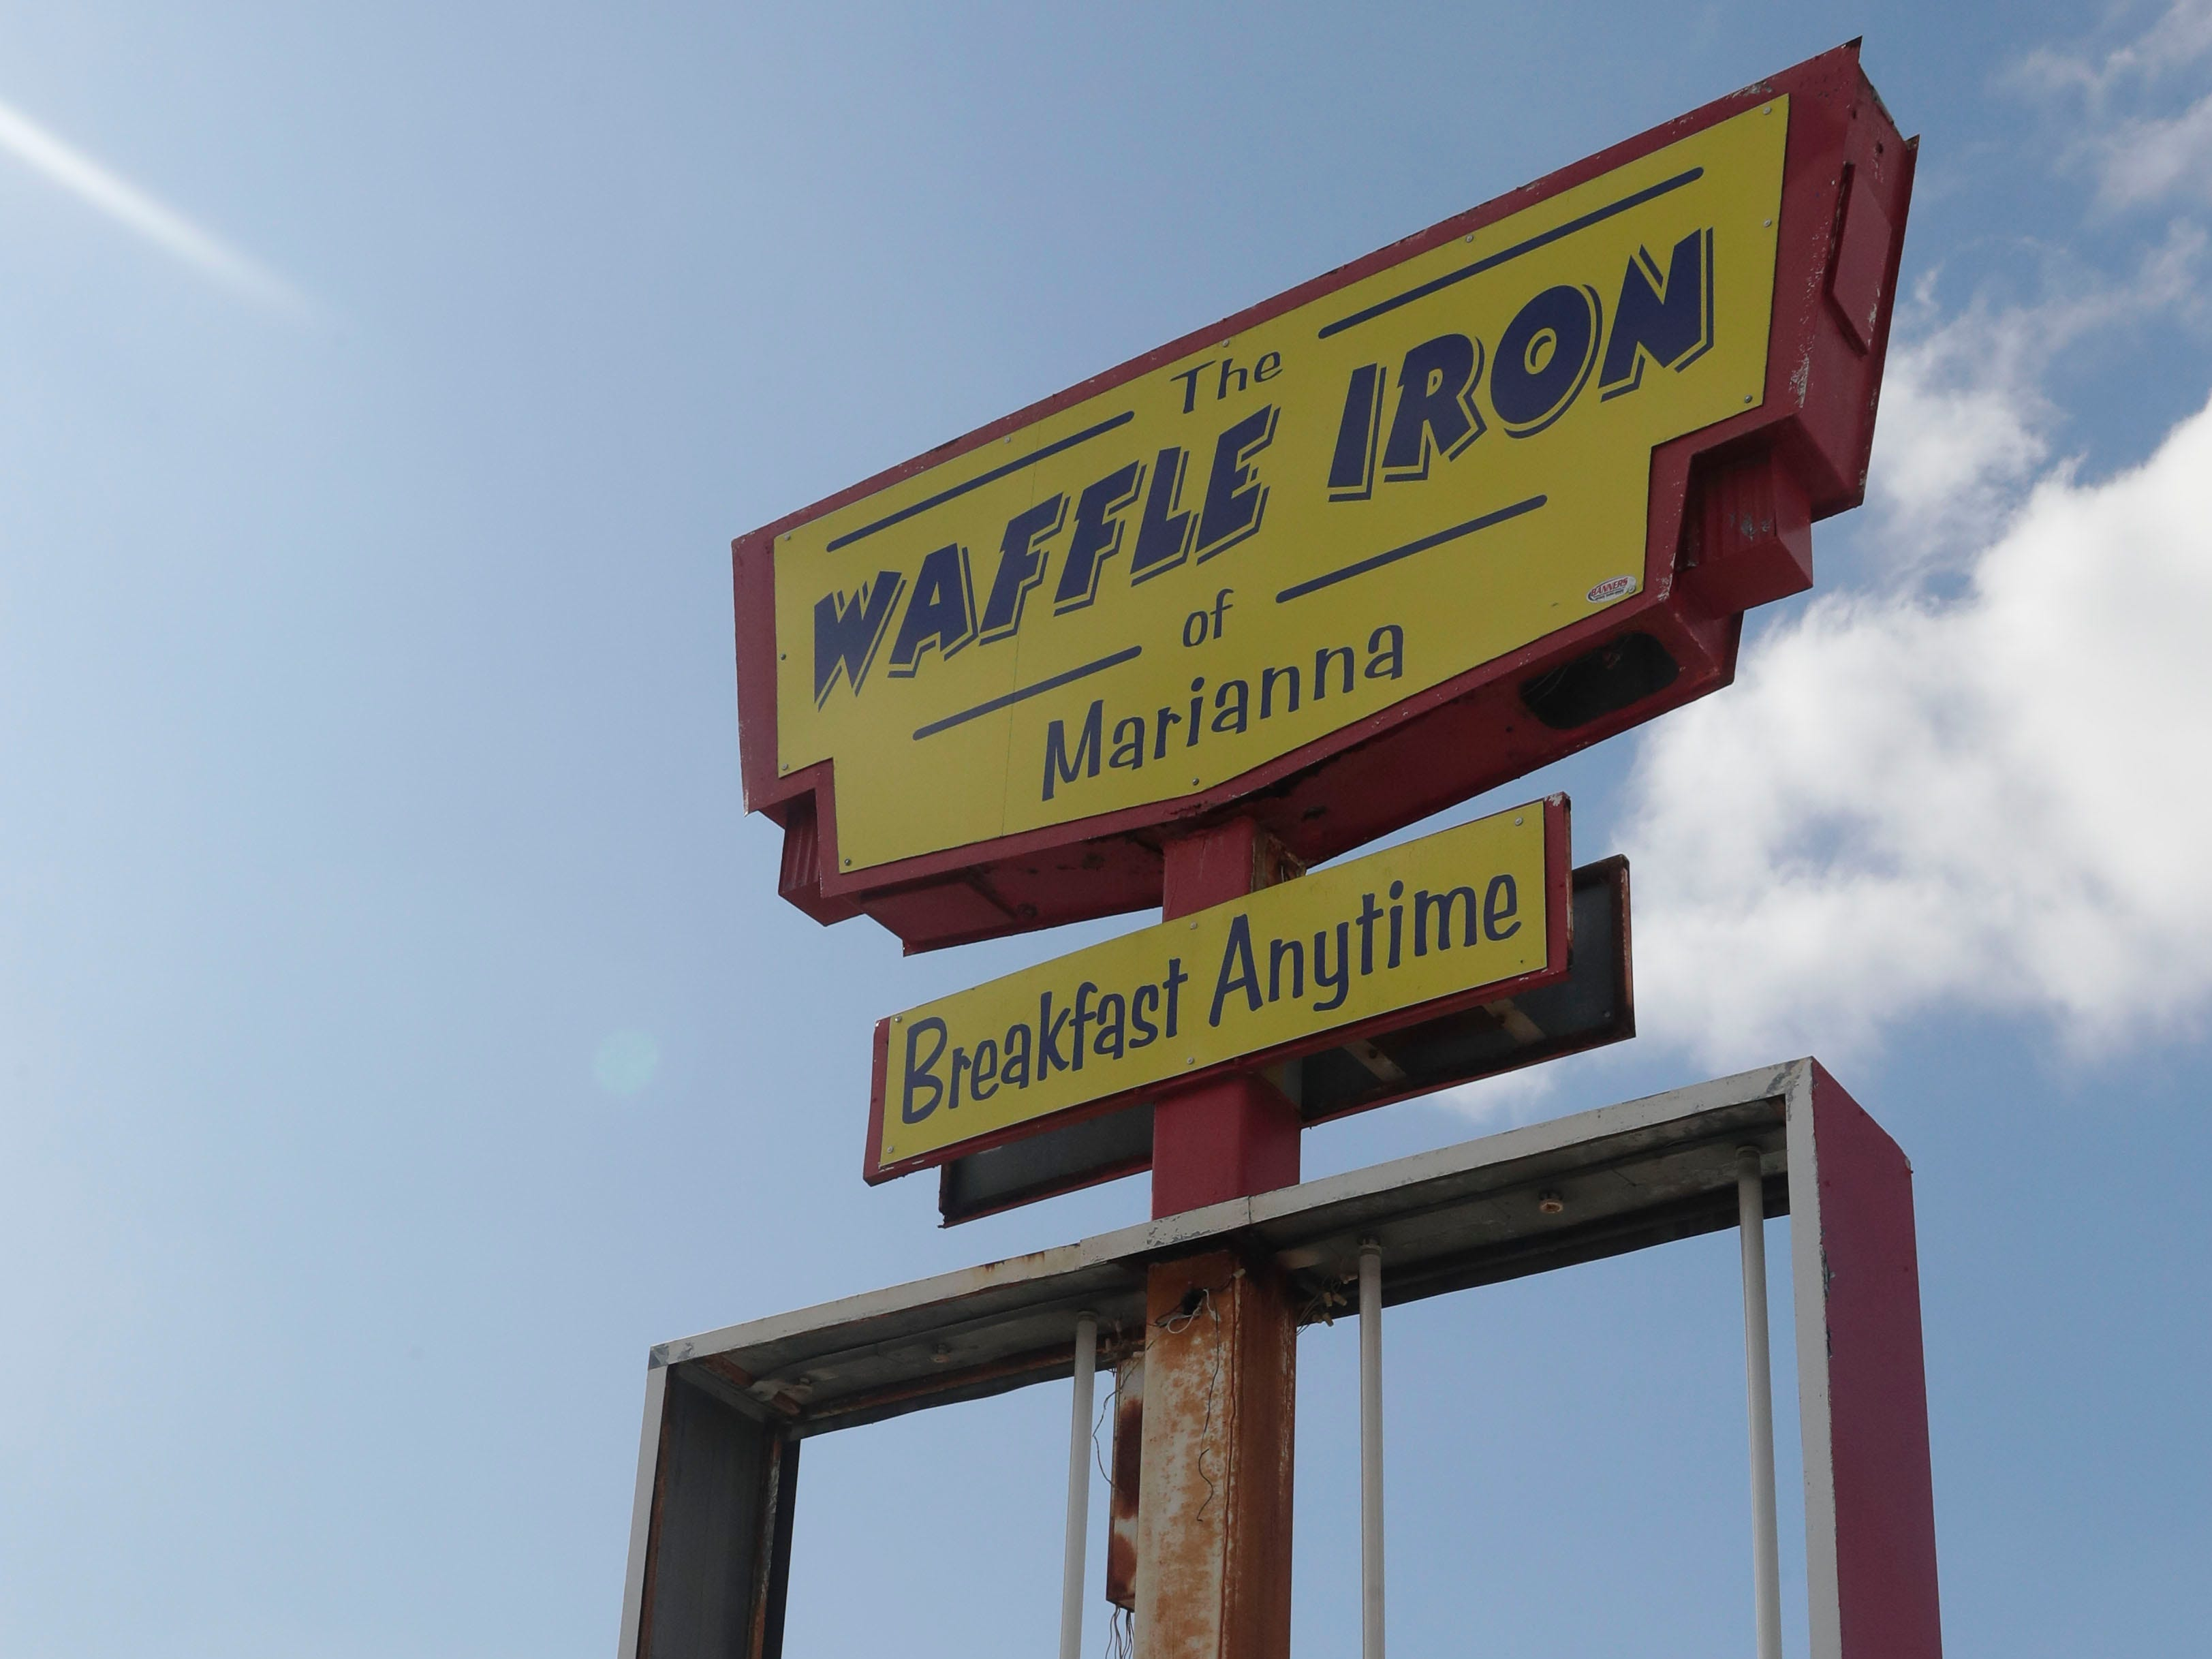 The Waffle Iron in Marianna, Fla. is open for business despite still having unresolved damage caused by Hurricane Michael, Tuesday Feb. 5, 2019.